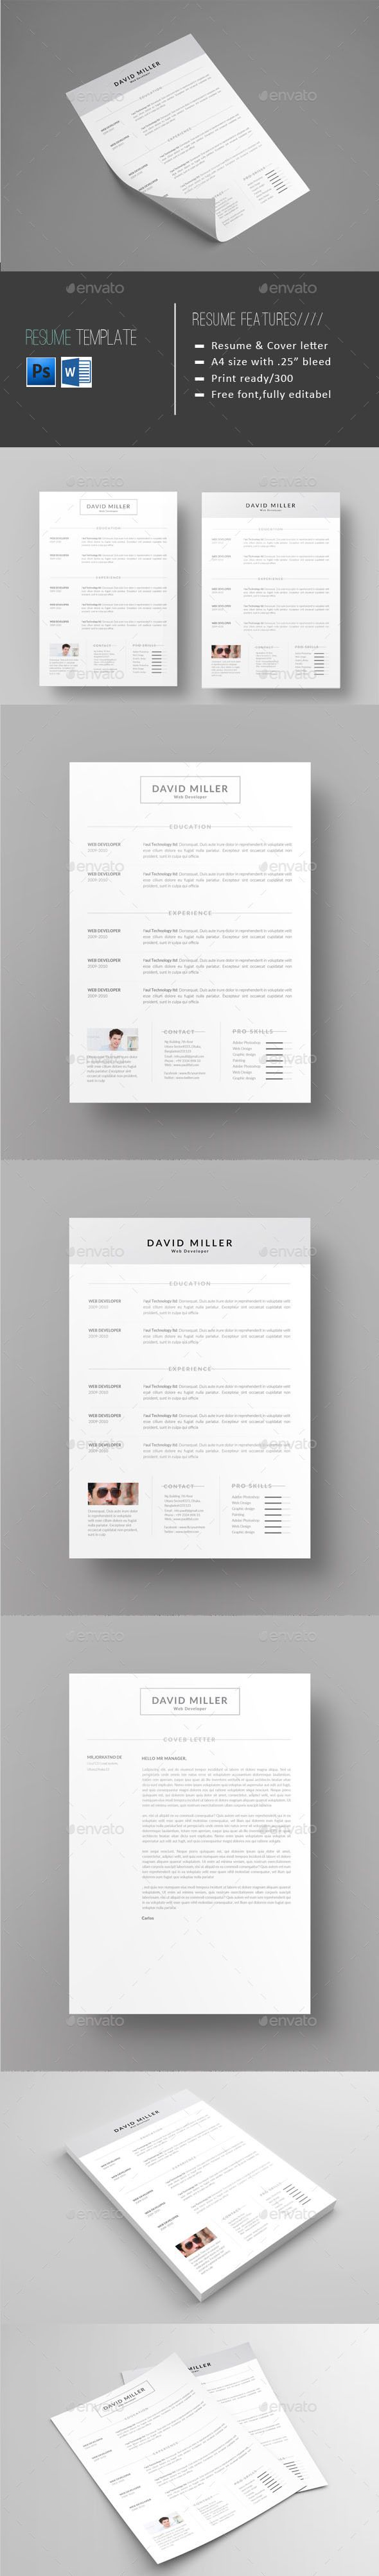 cosmetologist resume%0A Resume Design Template  Resumes Stationery Template PSD  Download here   https